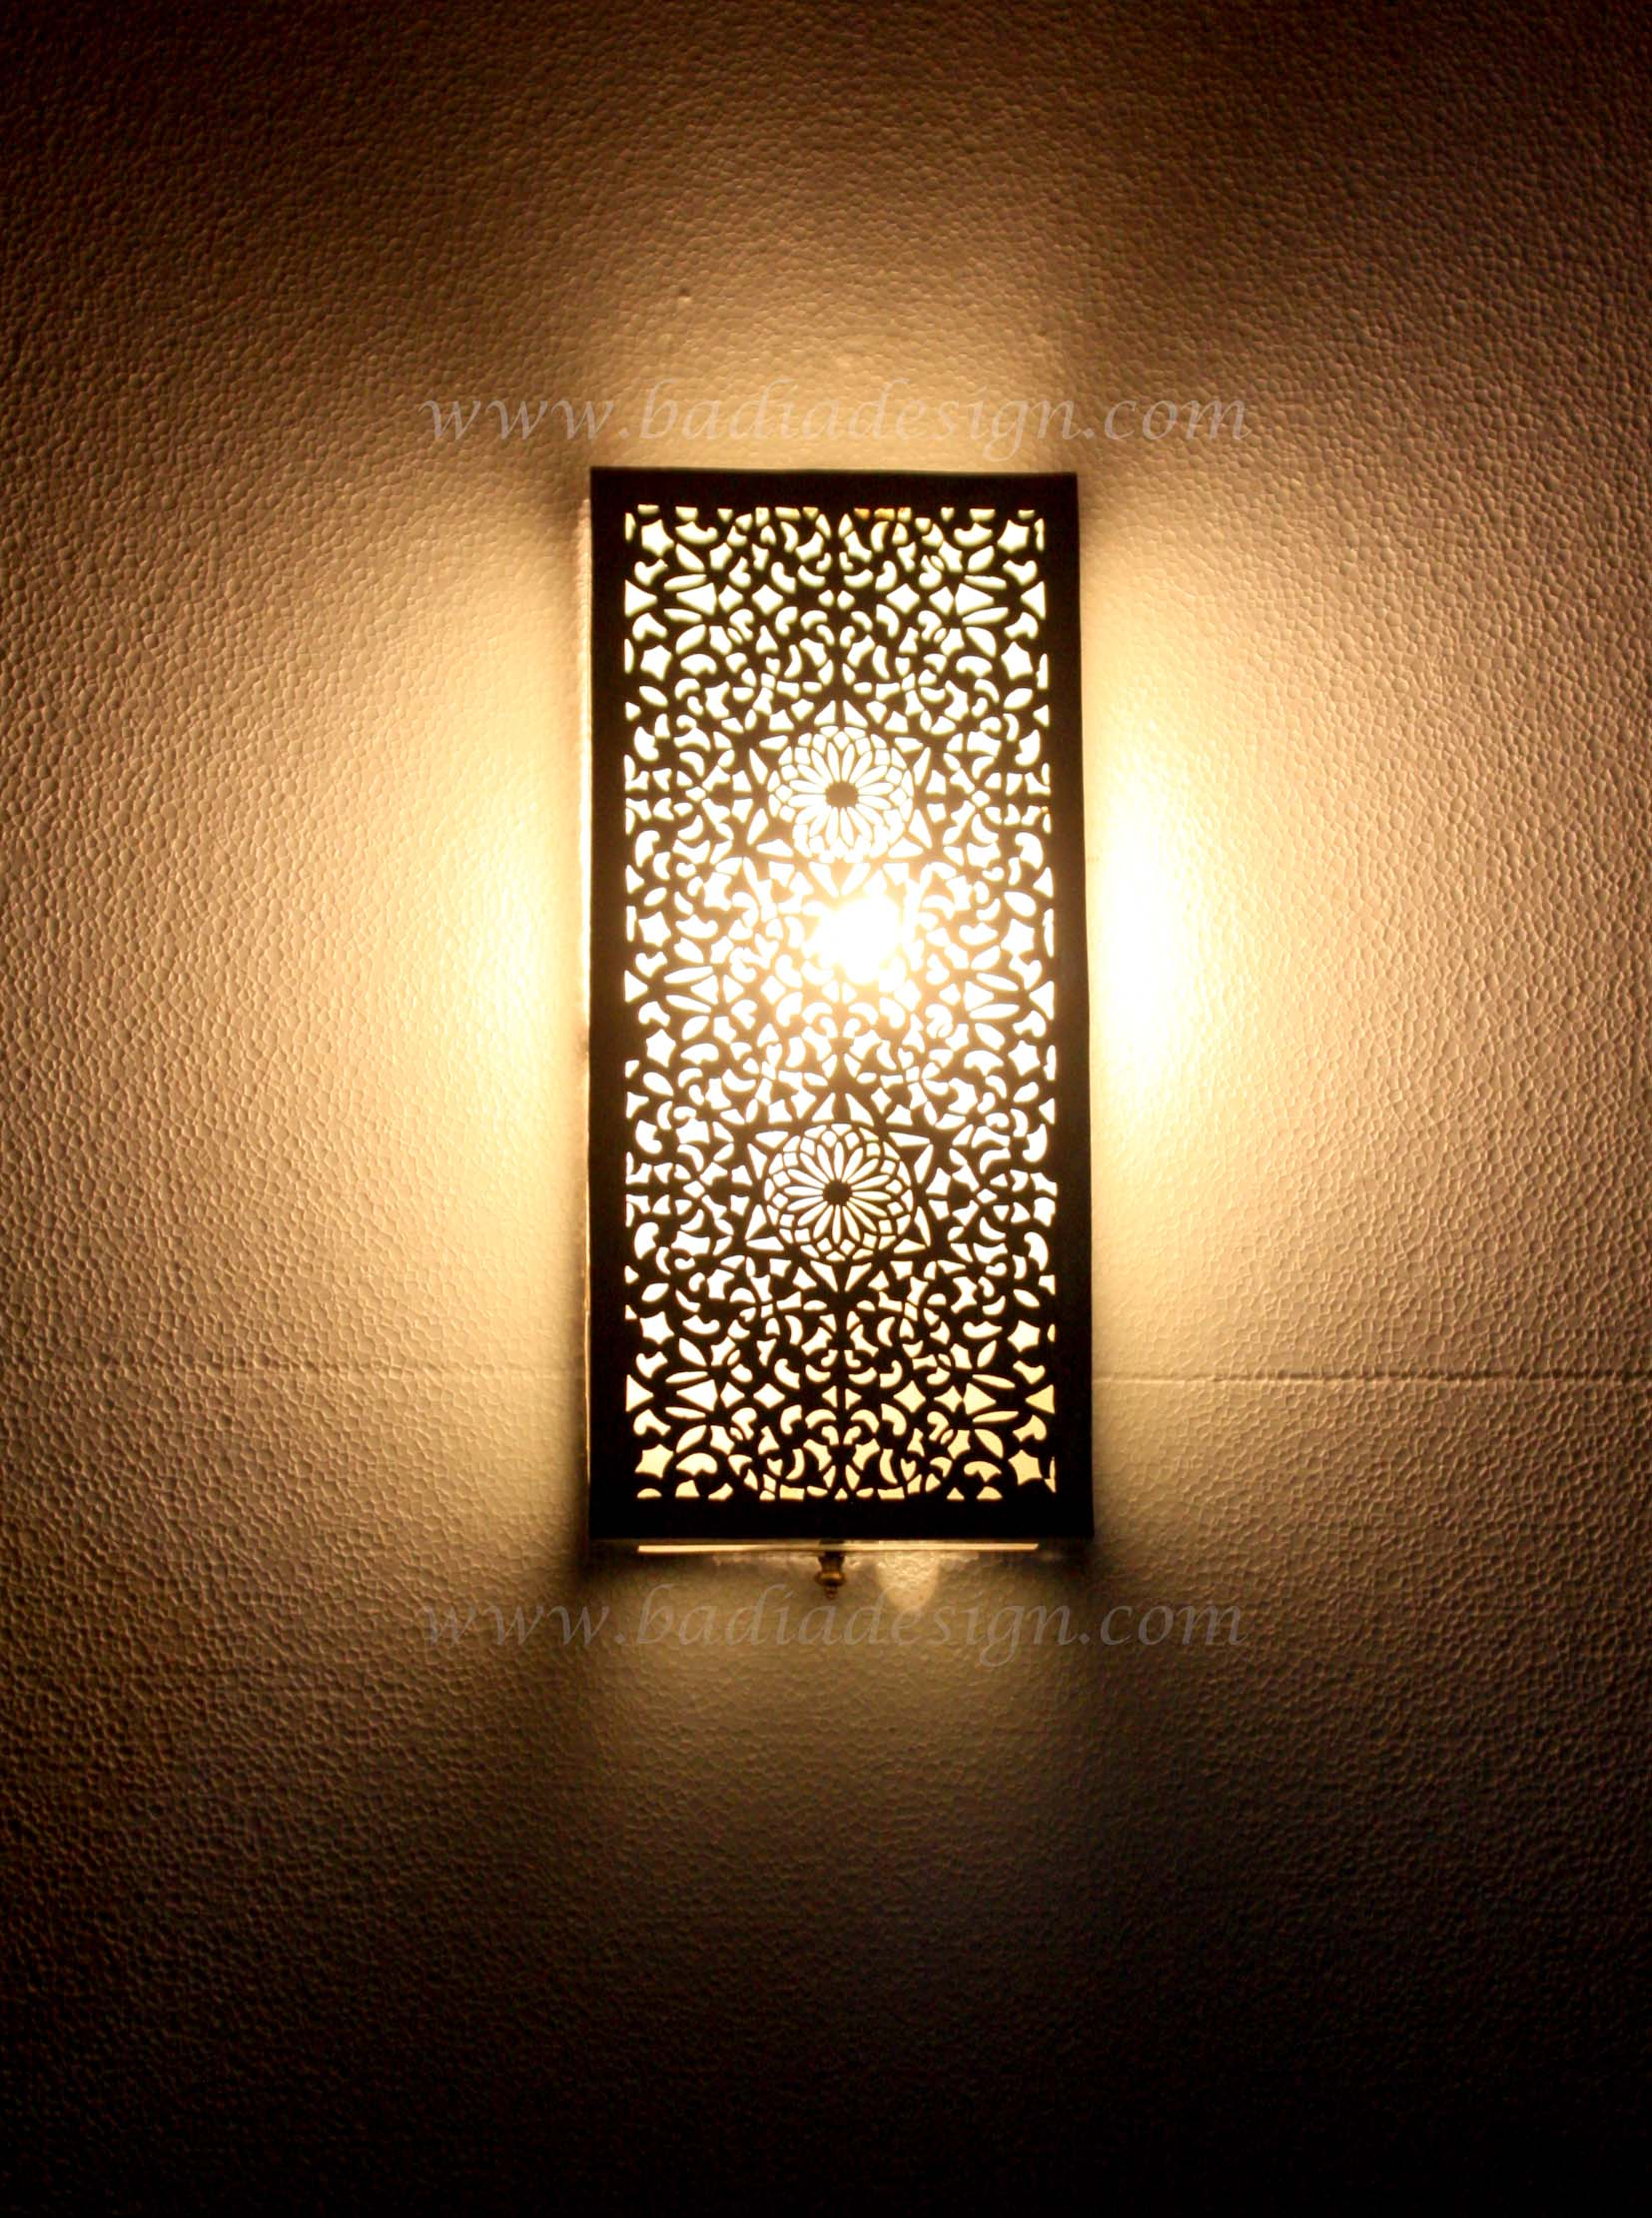 moroccan-lighting-memphis Wall Light Without Wiring on carpet wall, building wall, cable wall, security wall, construction wall, upholstery wall, conduit wall, wood wall, plumbing wall, siding wall, fan wall, insulation wall, wire wall, roof wall, flooring wall, windows wall, computer wall, drywall wall, tools wall,